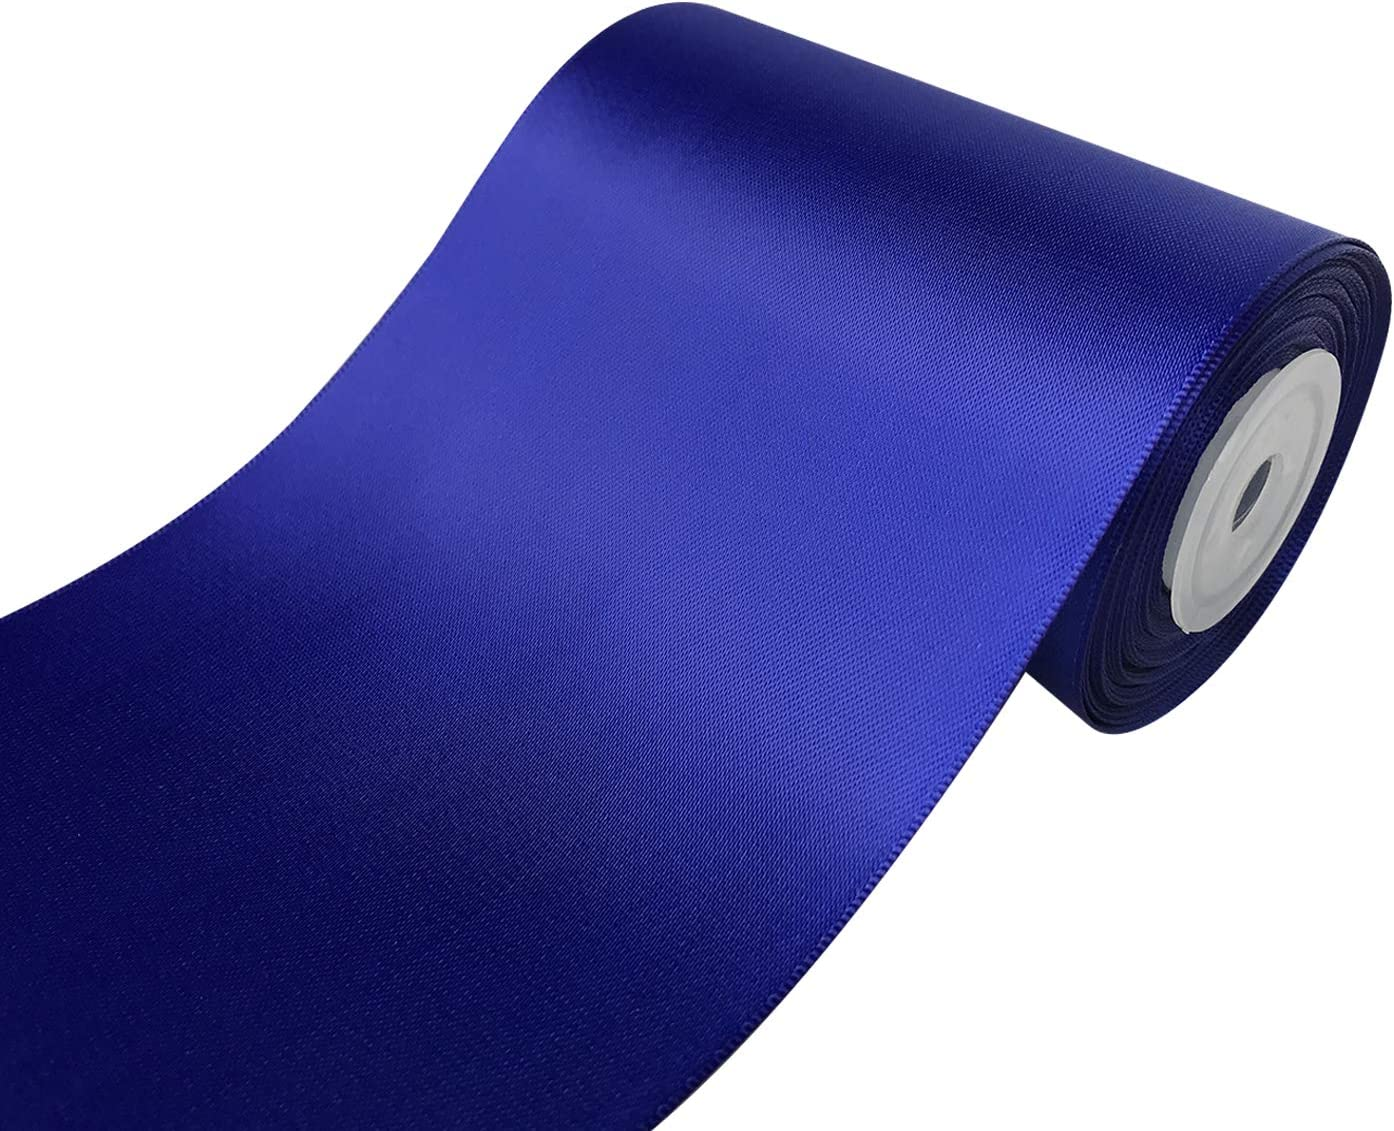 QIANF 4 inch Wide Solid Color No Fading Double Face Satin Ribbon Great for Chair Sash - 10 Yard (477-Royal Blue)